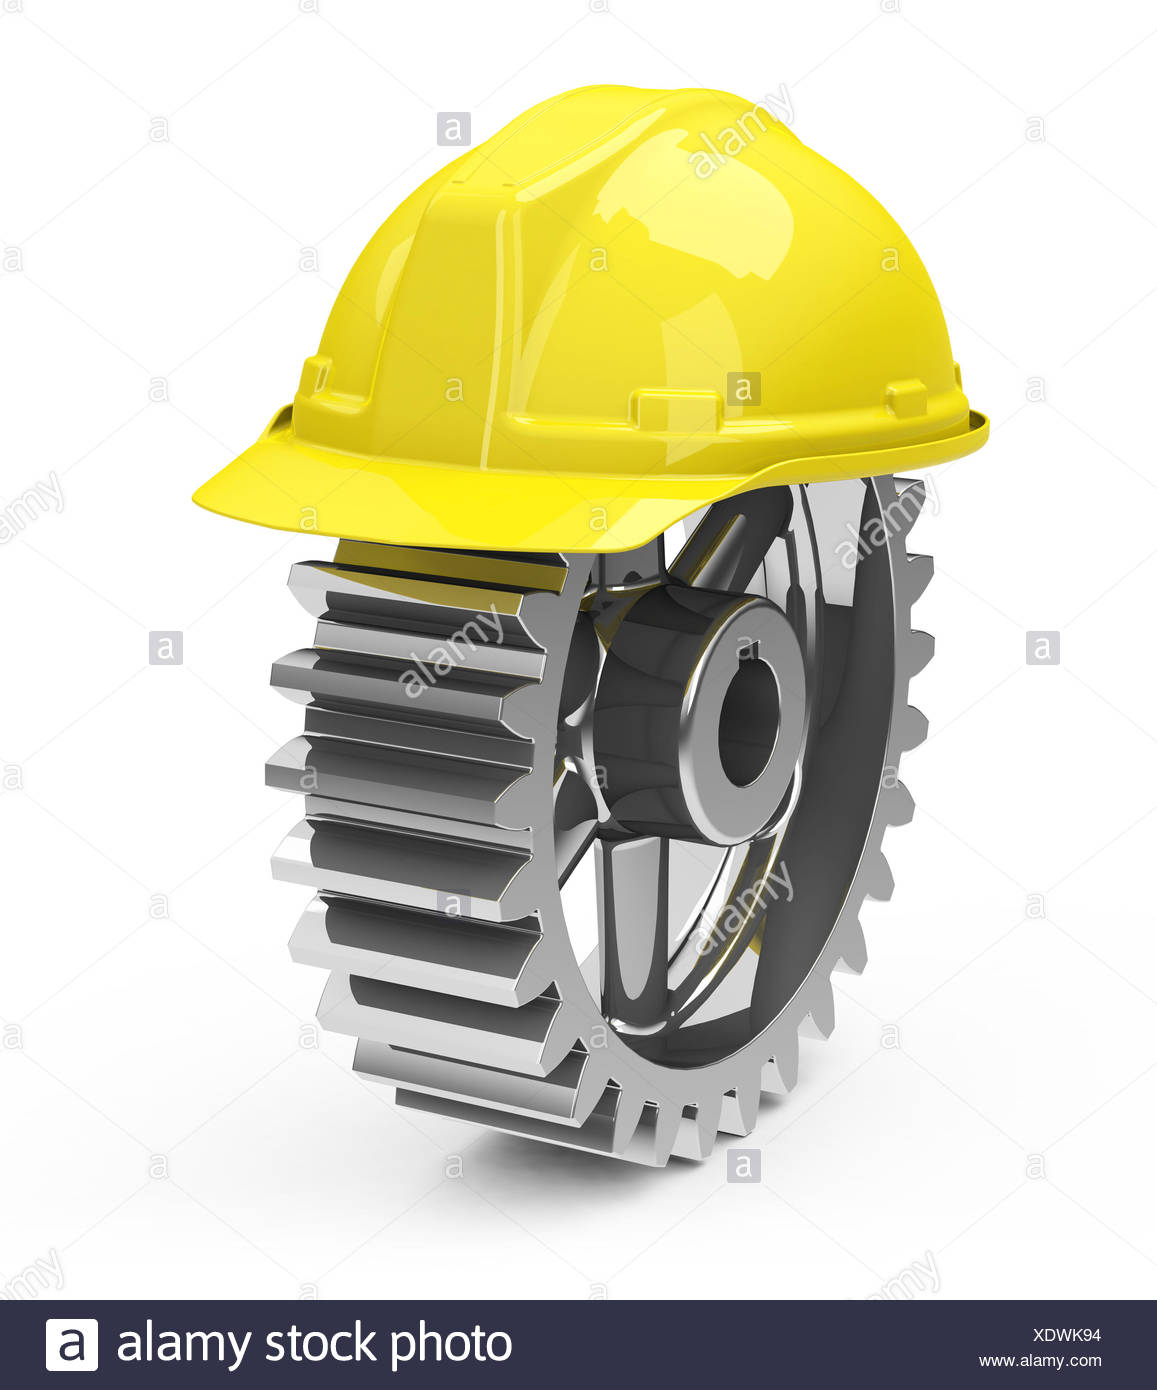 safety helmet and gearwheel - Stock Image